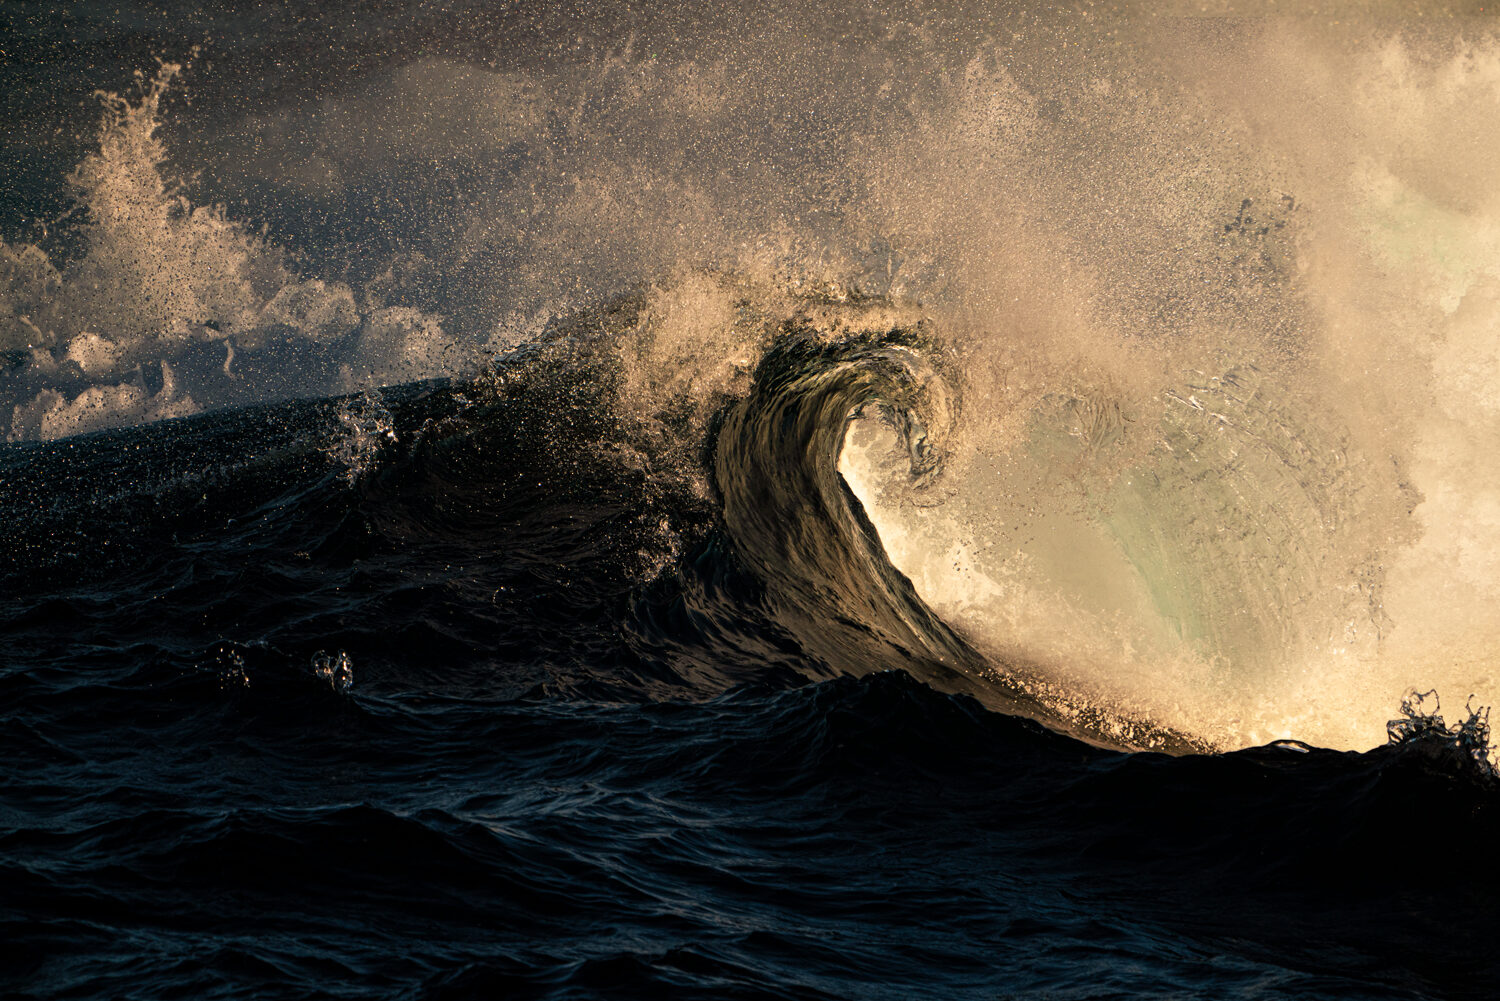 Exploding wave at sunset, NSW Australia